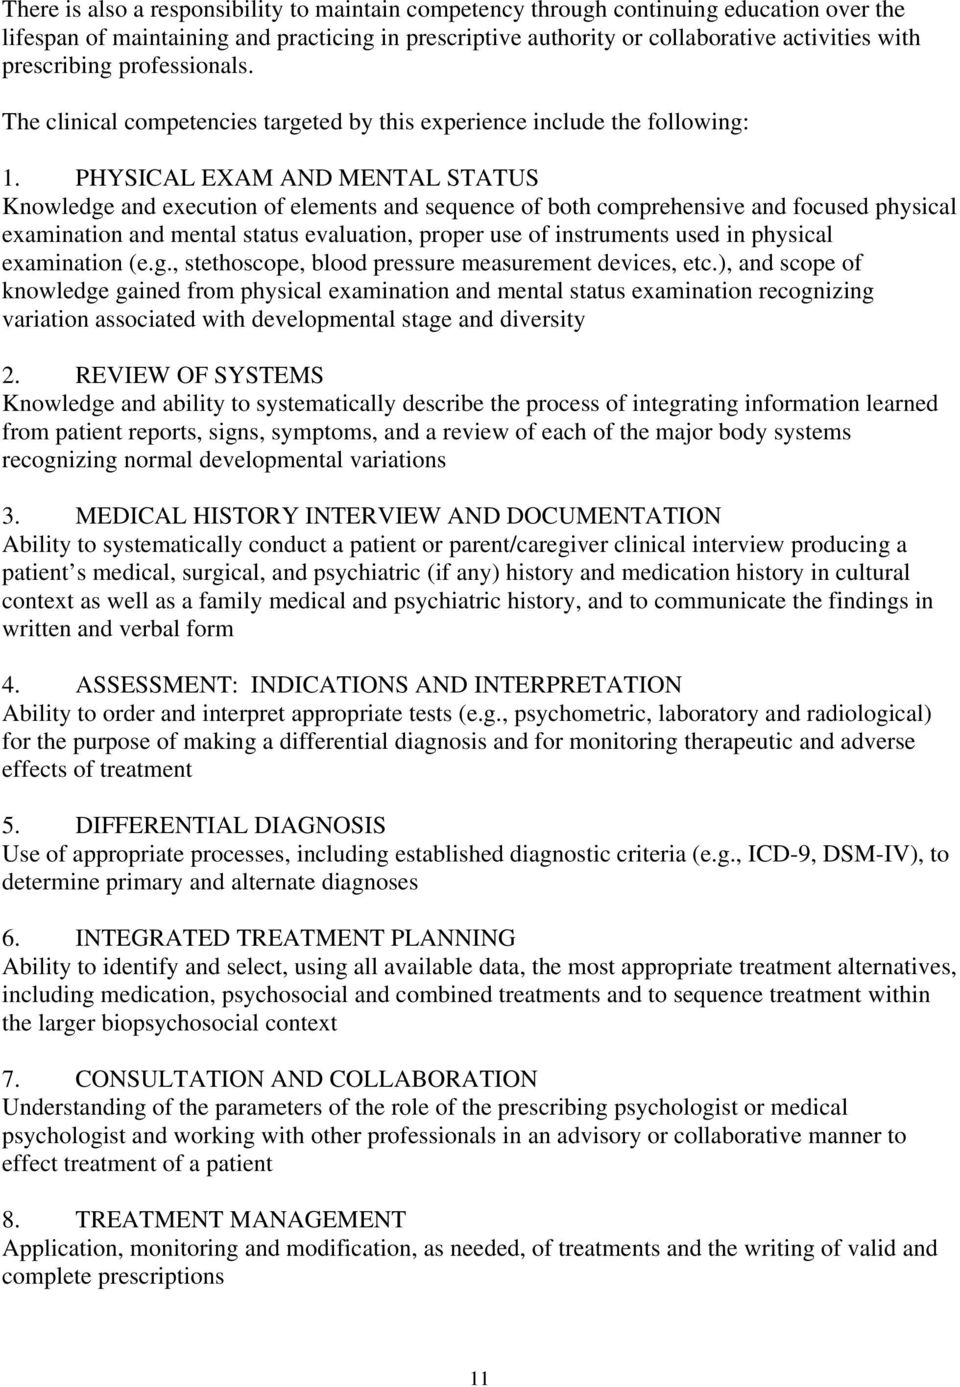 PHYSICAL EXAM AND MENTAL STATUS Knowledge and execution of elements and sequence of both comprehensive and focused physical examination and mental status evaluation, proper use of instruments used in